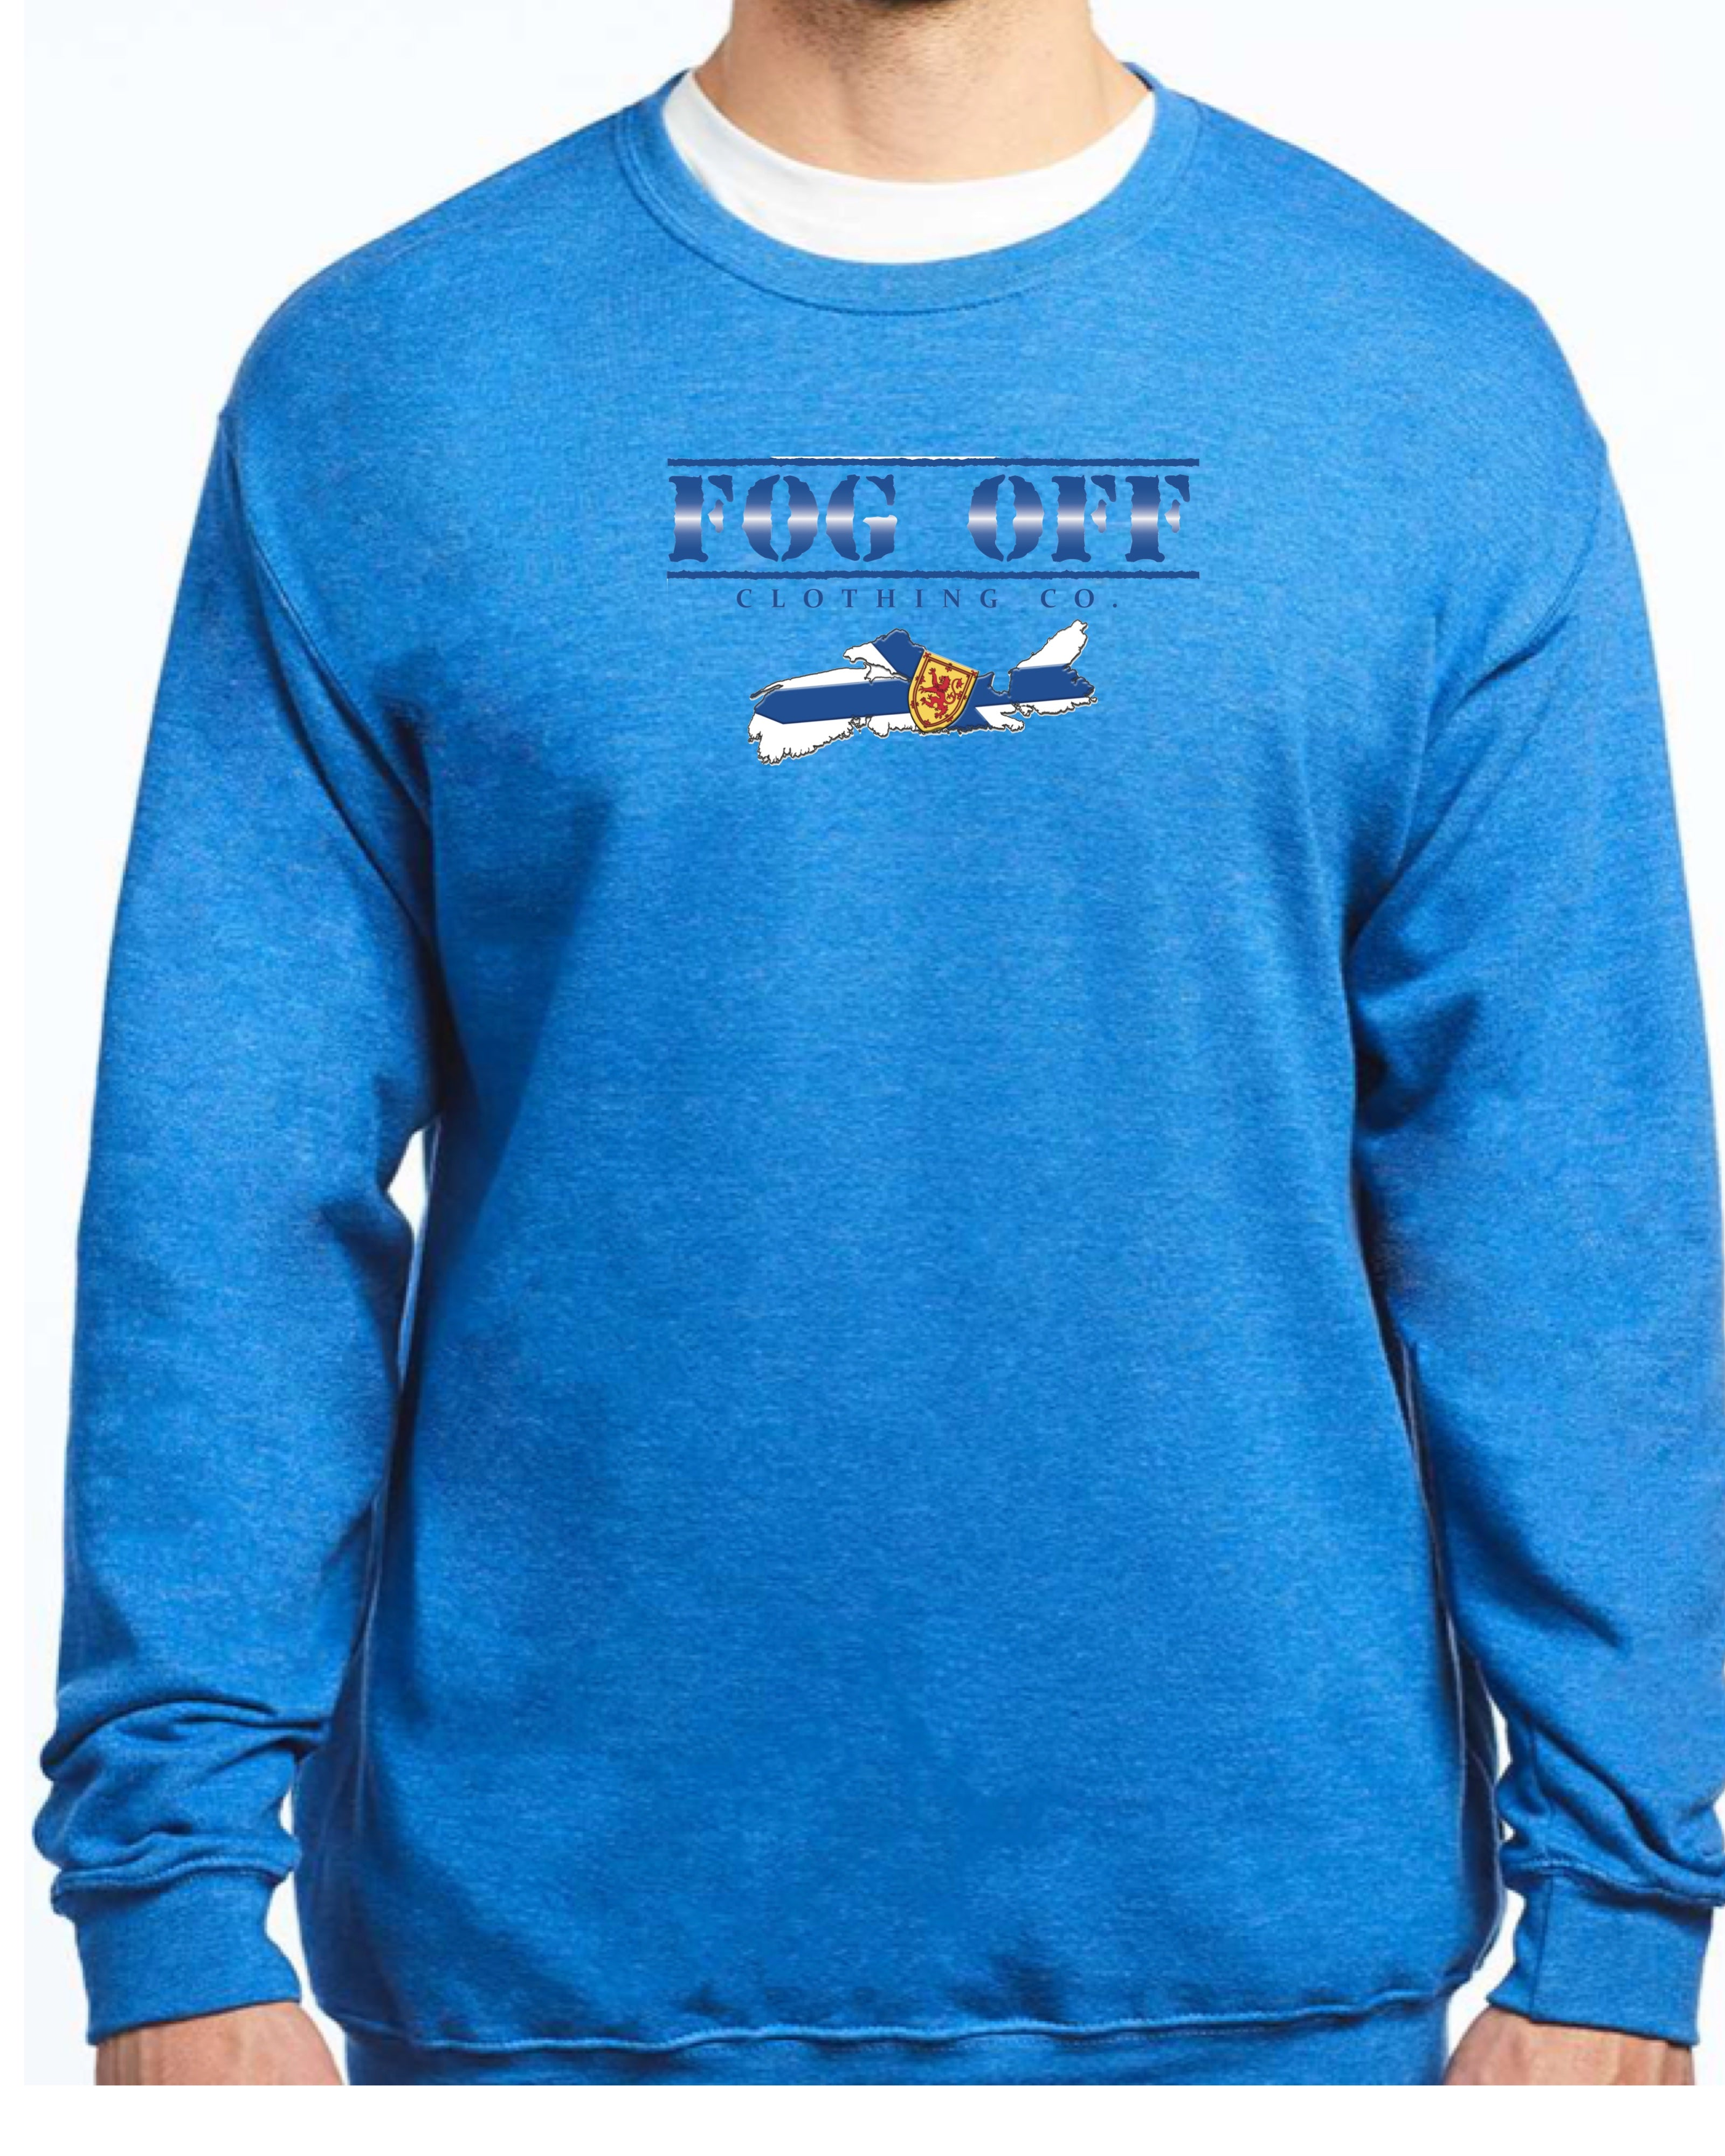 Nova Scotia Sweater